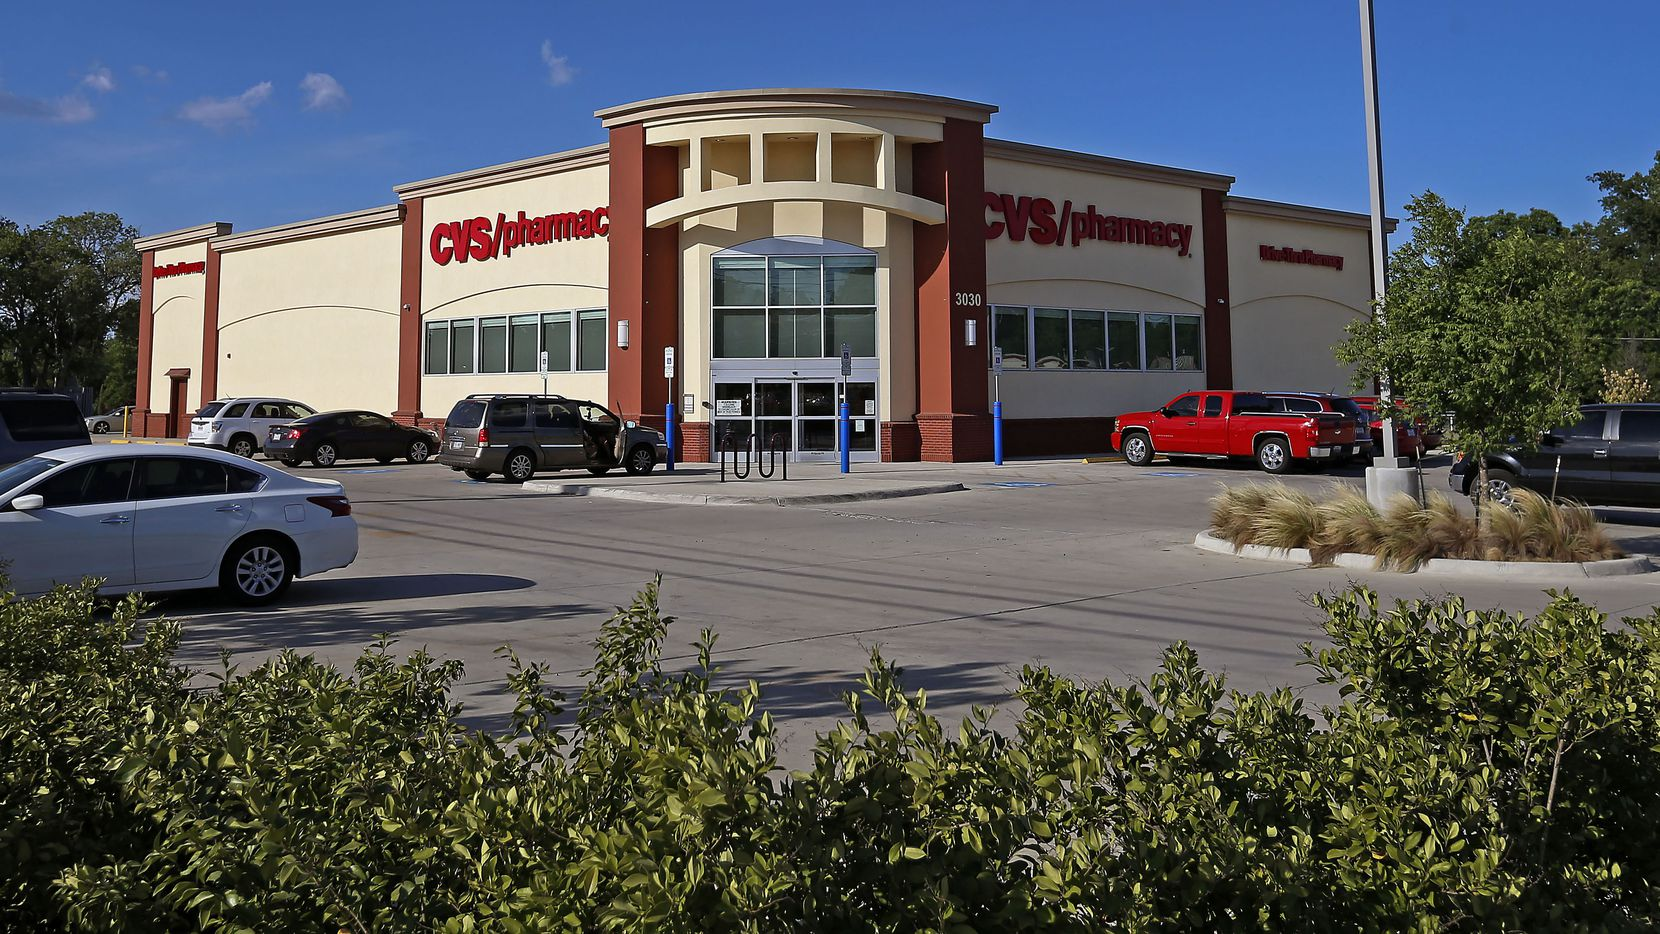 The CVS store located at 3030 Sylvan Avenue in Dallas, Wednesday, June 13, 2018